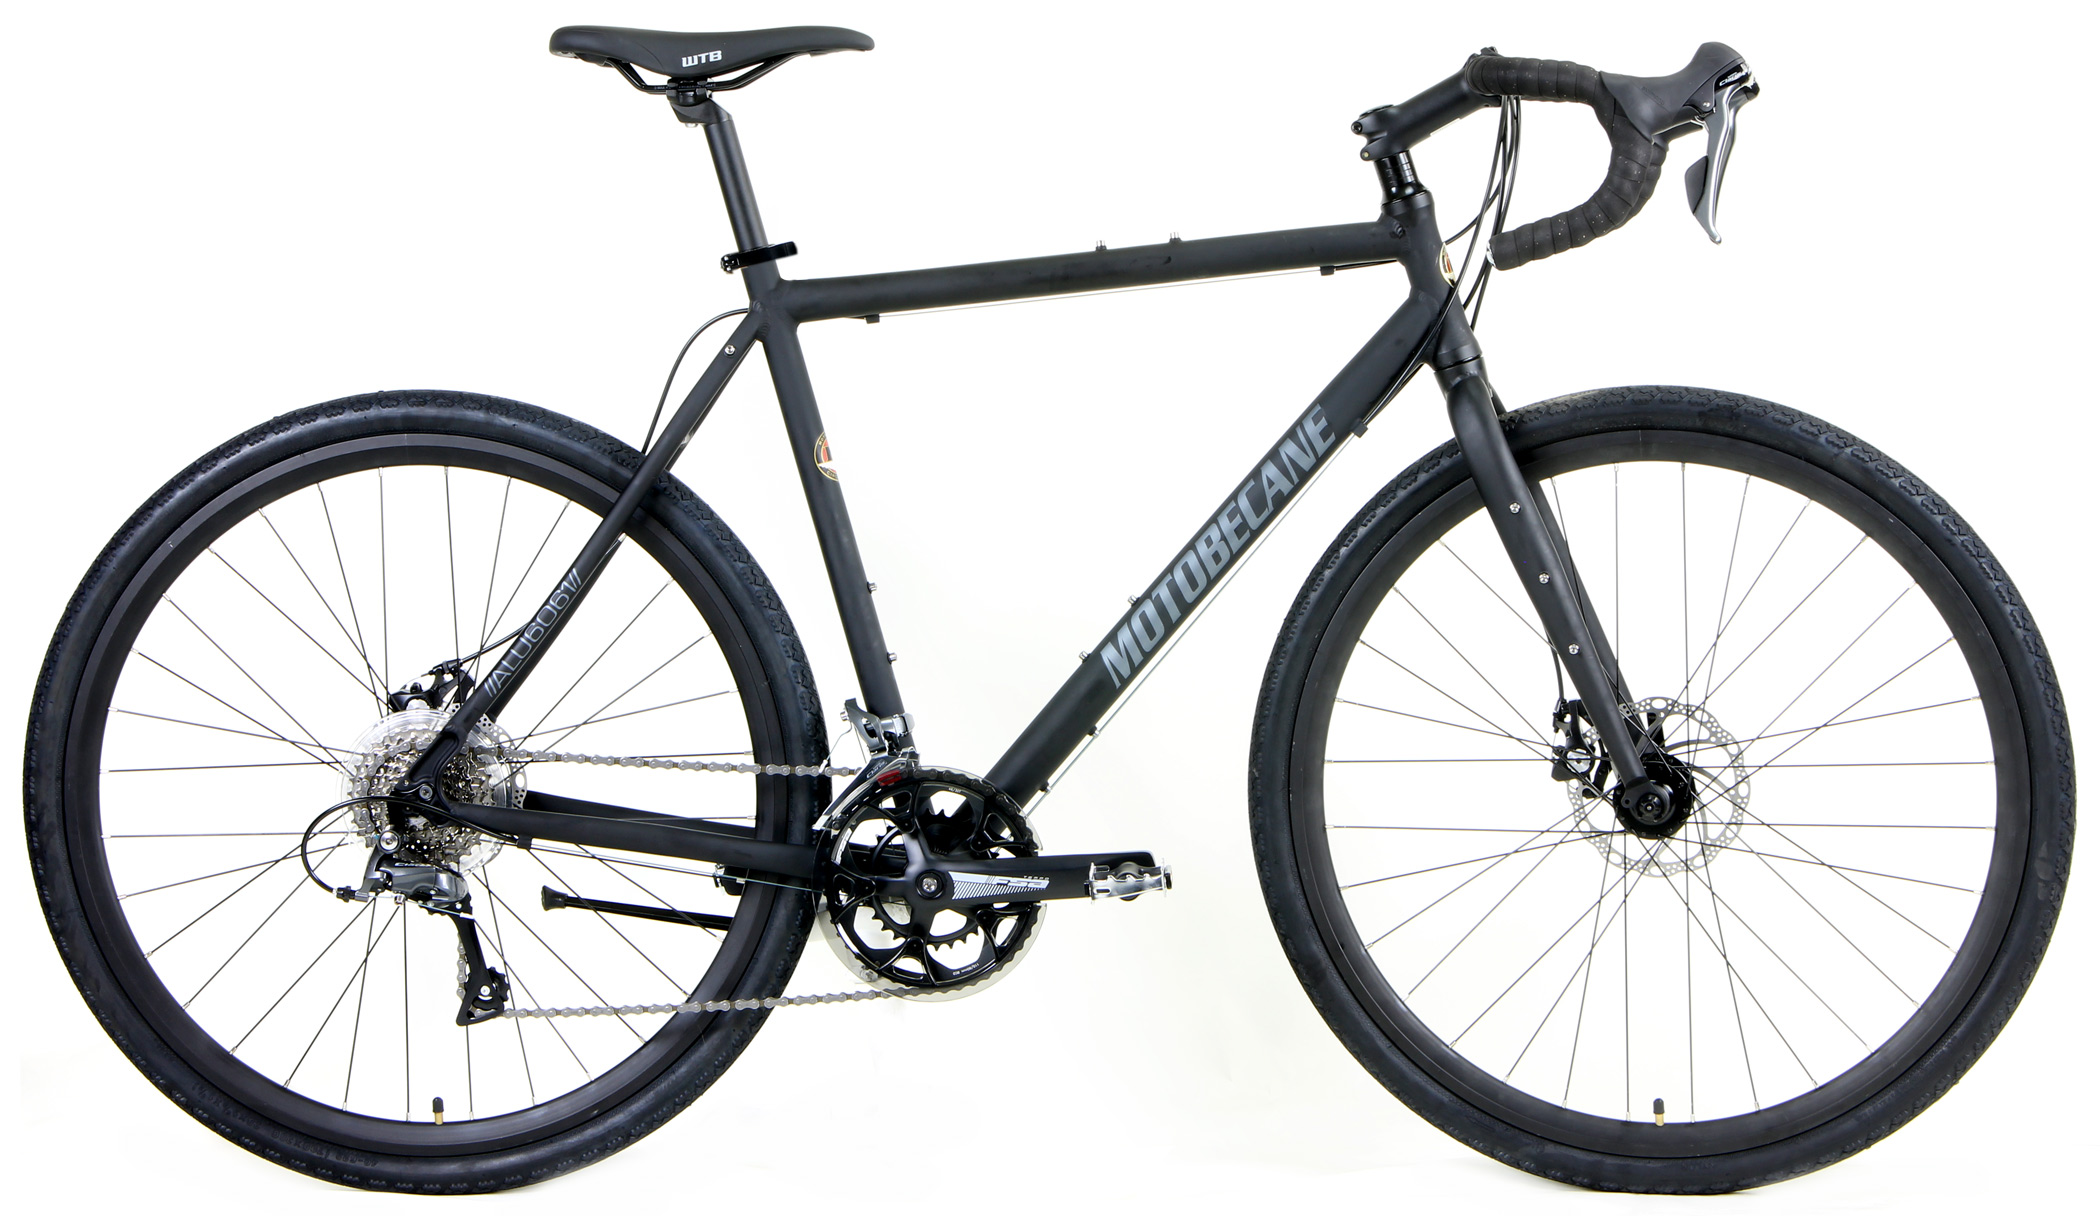 Bikes 2019 Motobecane Gravel X3 Disc Brake Super Road Bike Image